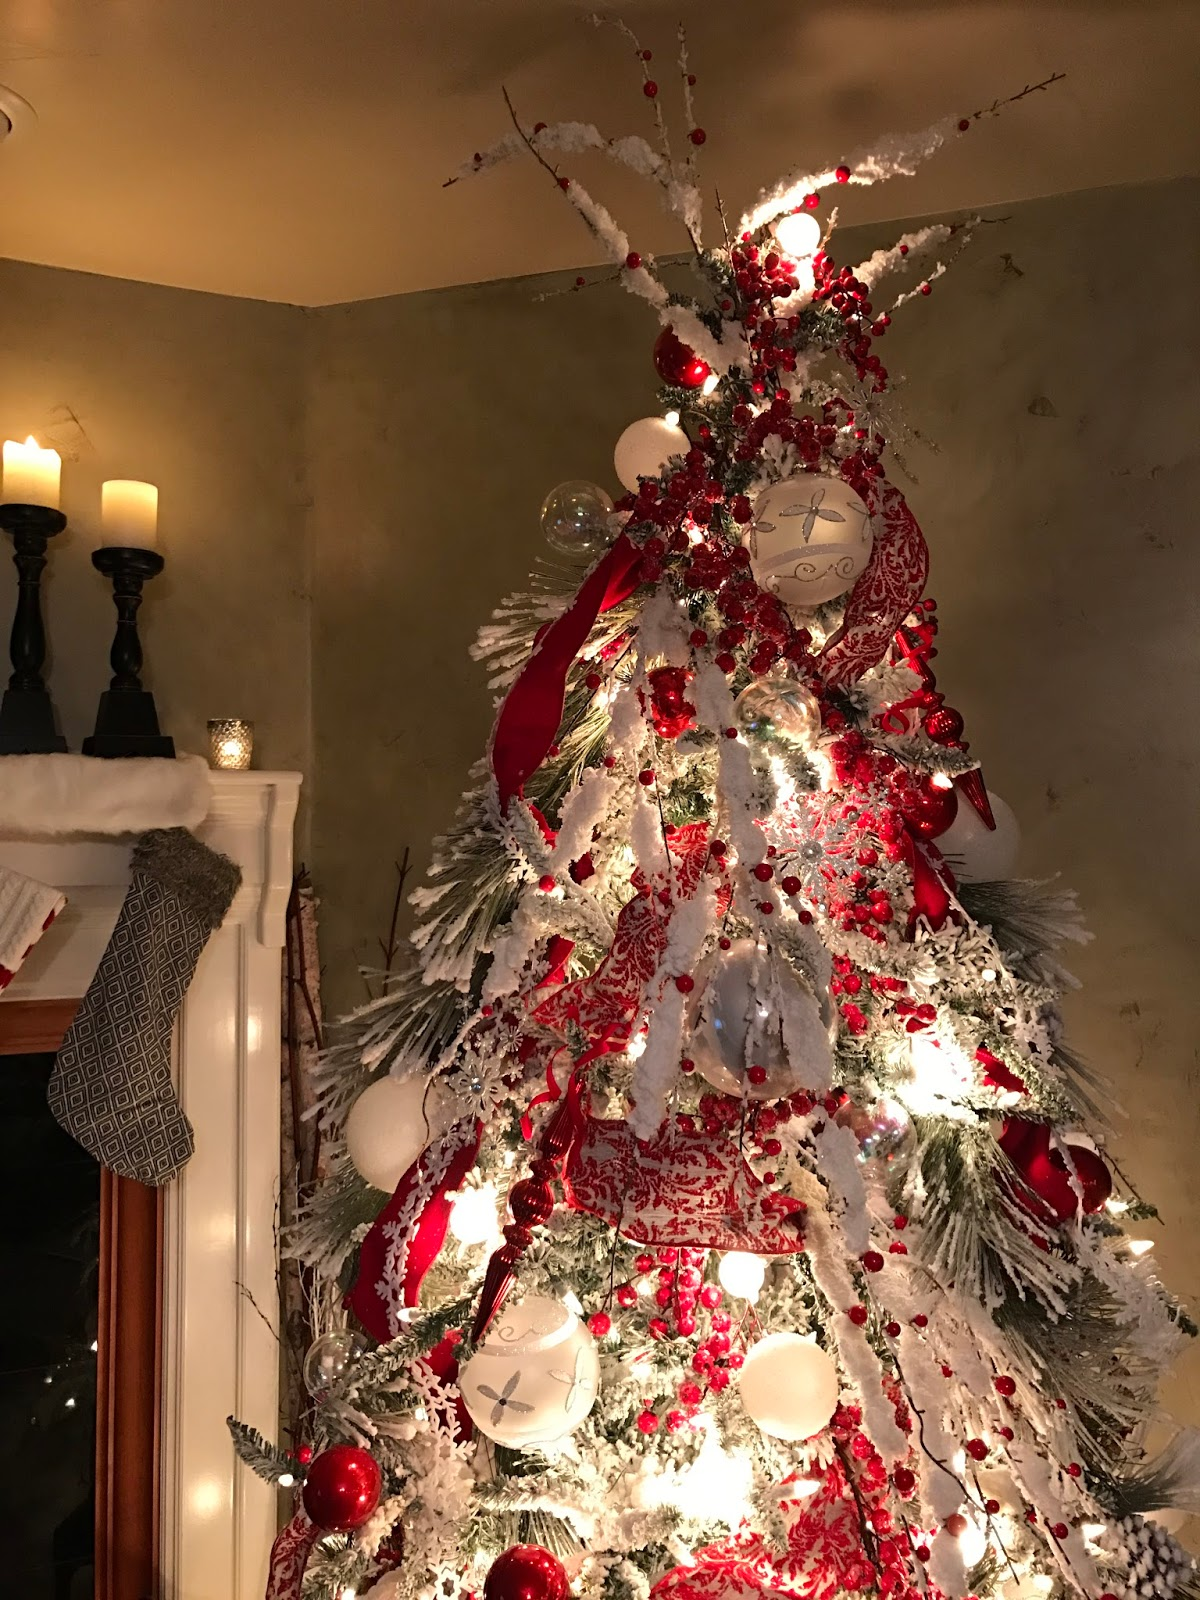 Decorated Mantel The First Day of Christmas Ideas For